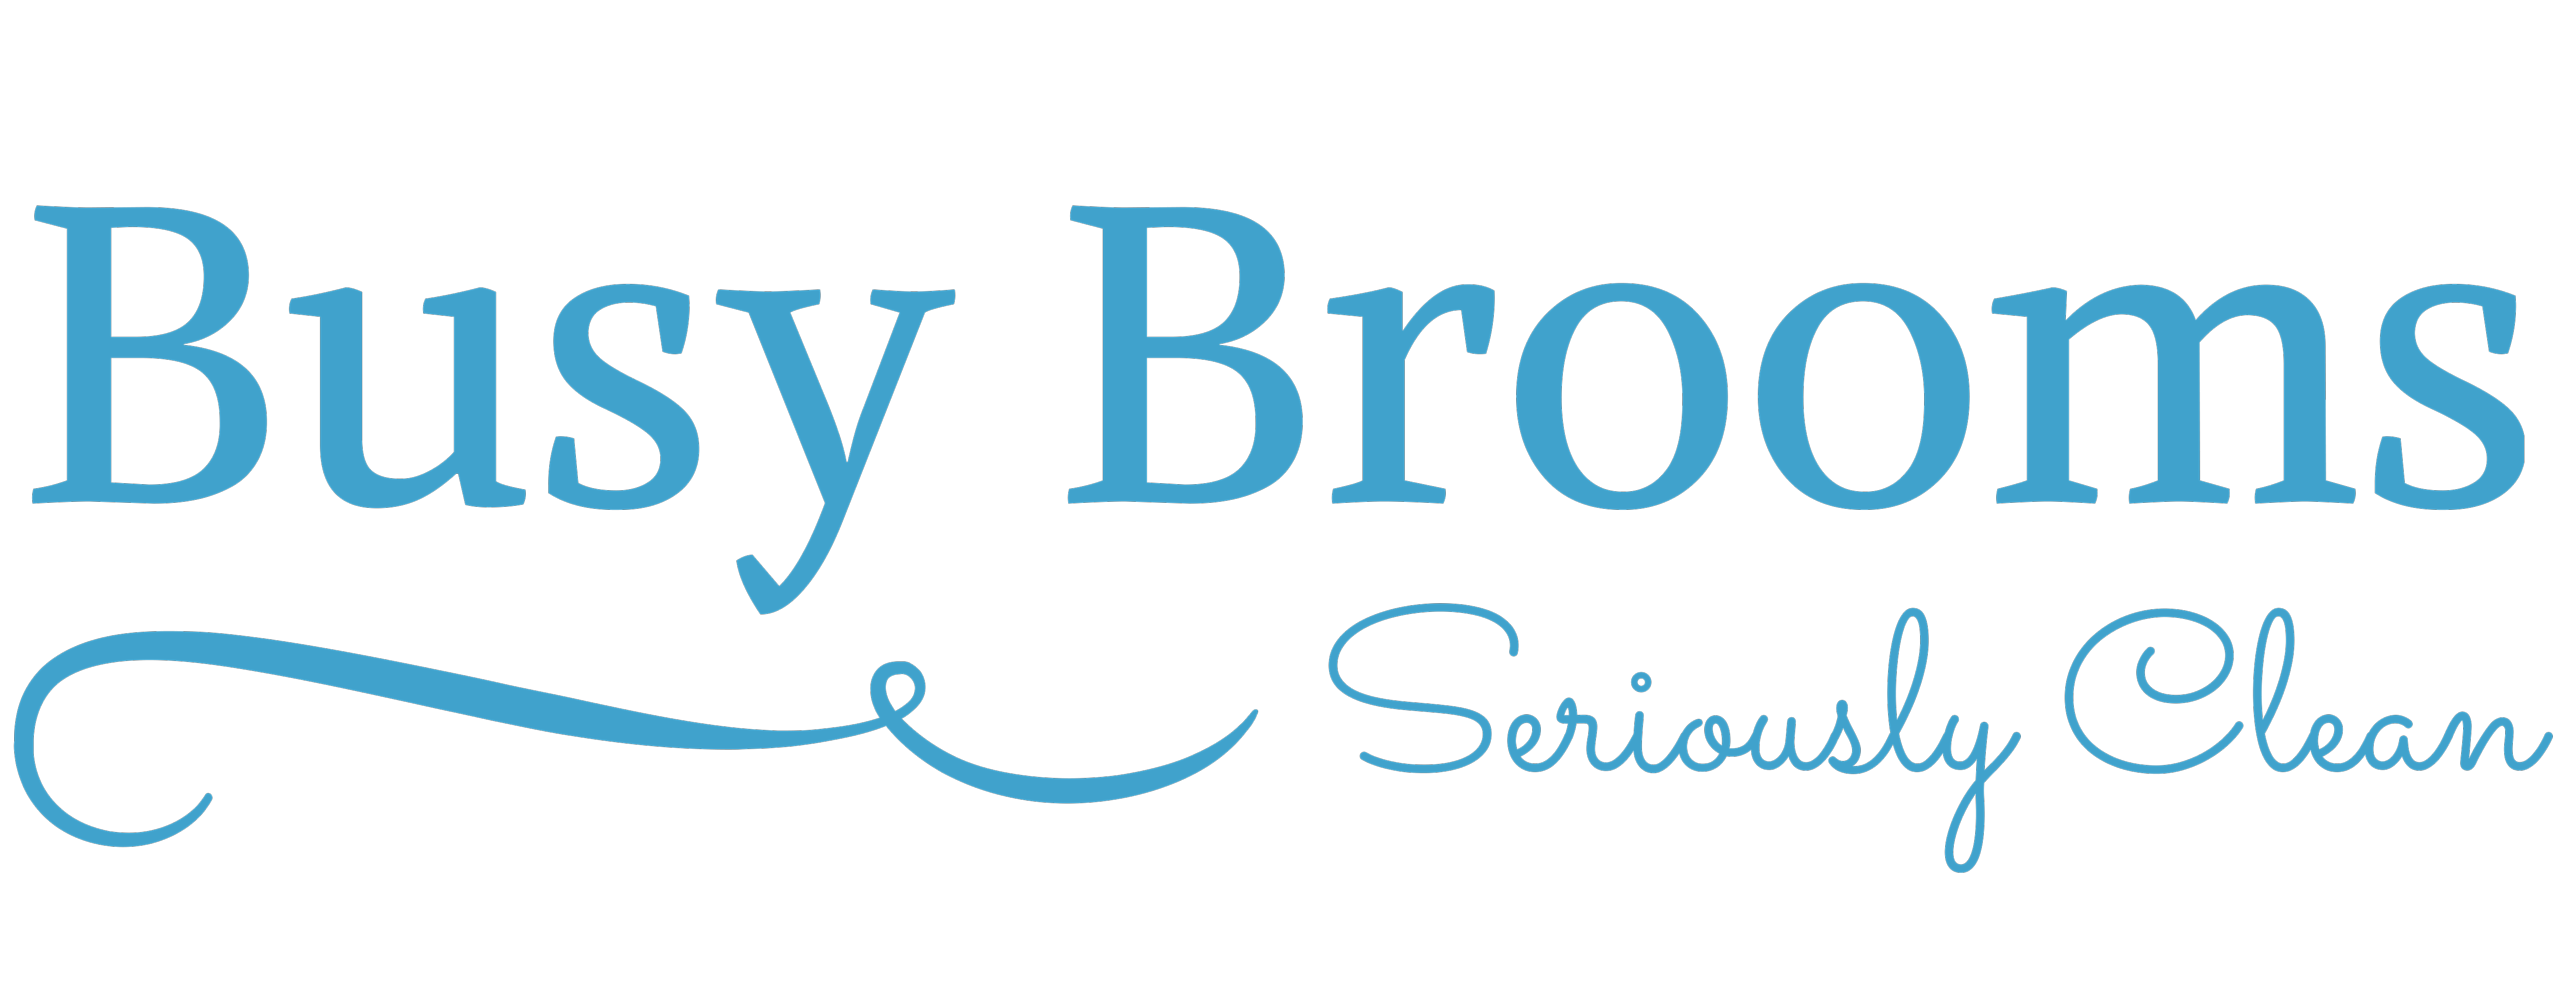 Busy Brooms Maid Services